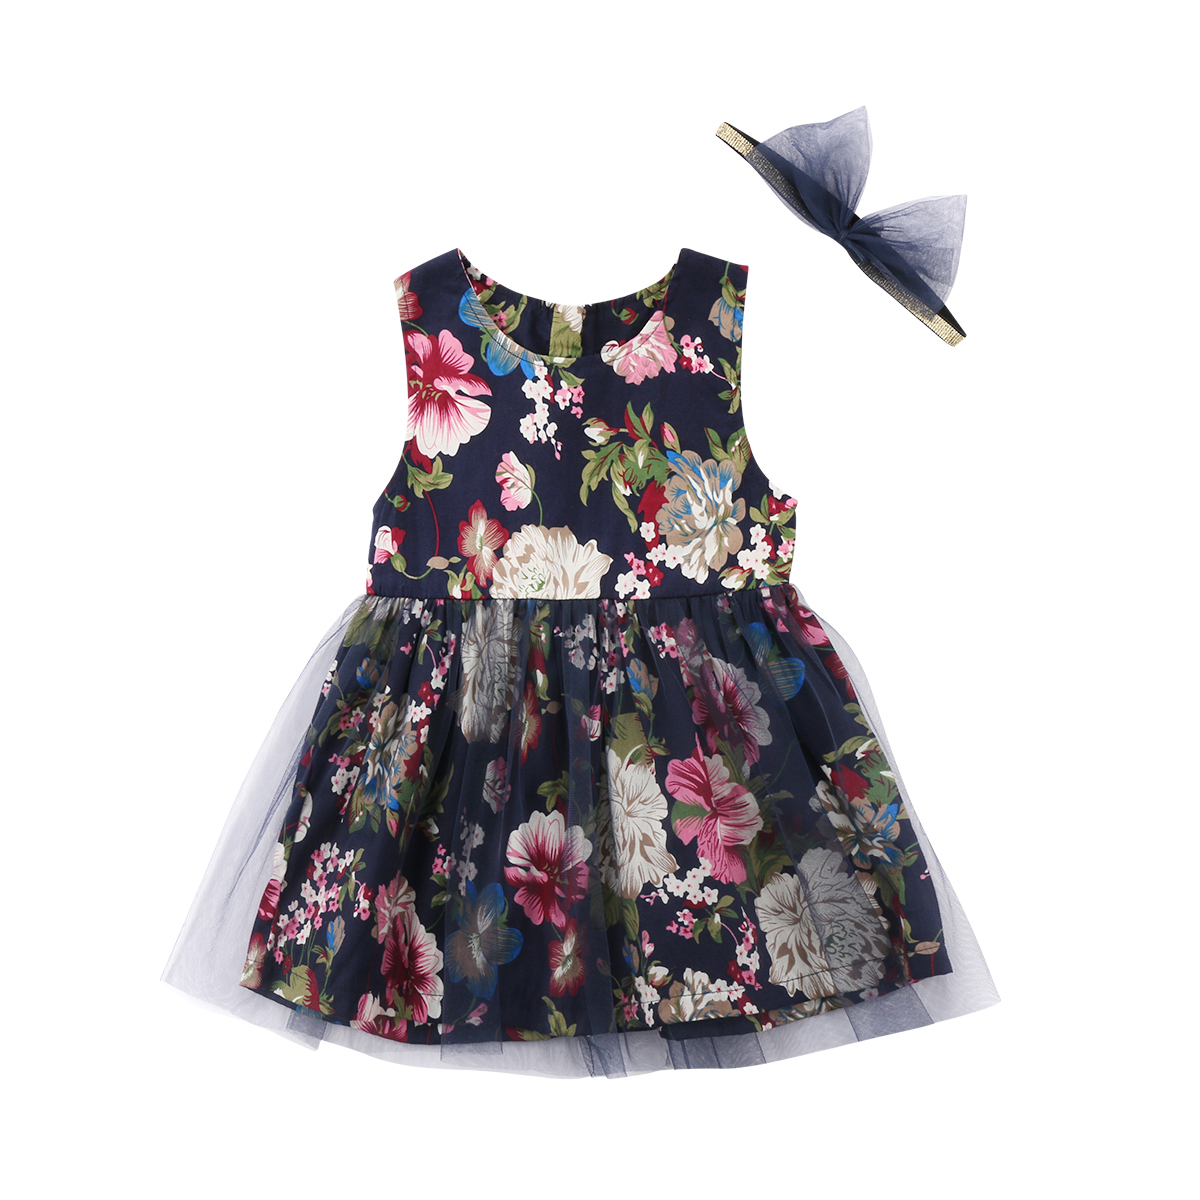 Sleeveless Toddler Baby Kids Girls Clothing Dresses Summer Floral Tulle Party Dress Sundress Clothes Girl 6M-4T ruffles baby girl back cross dresses infant toddler girls sleeveless brown summer princess dress sundress clothes